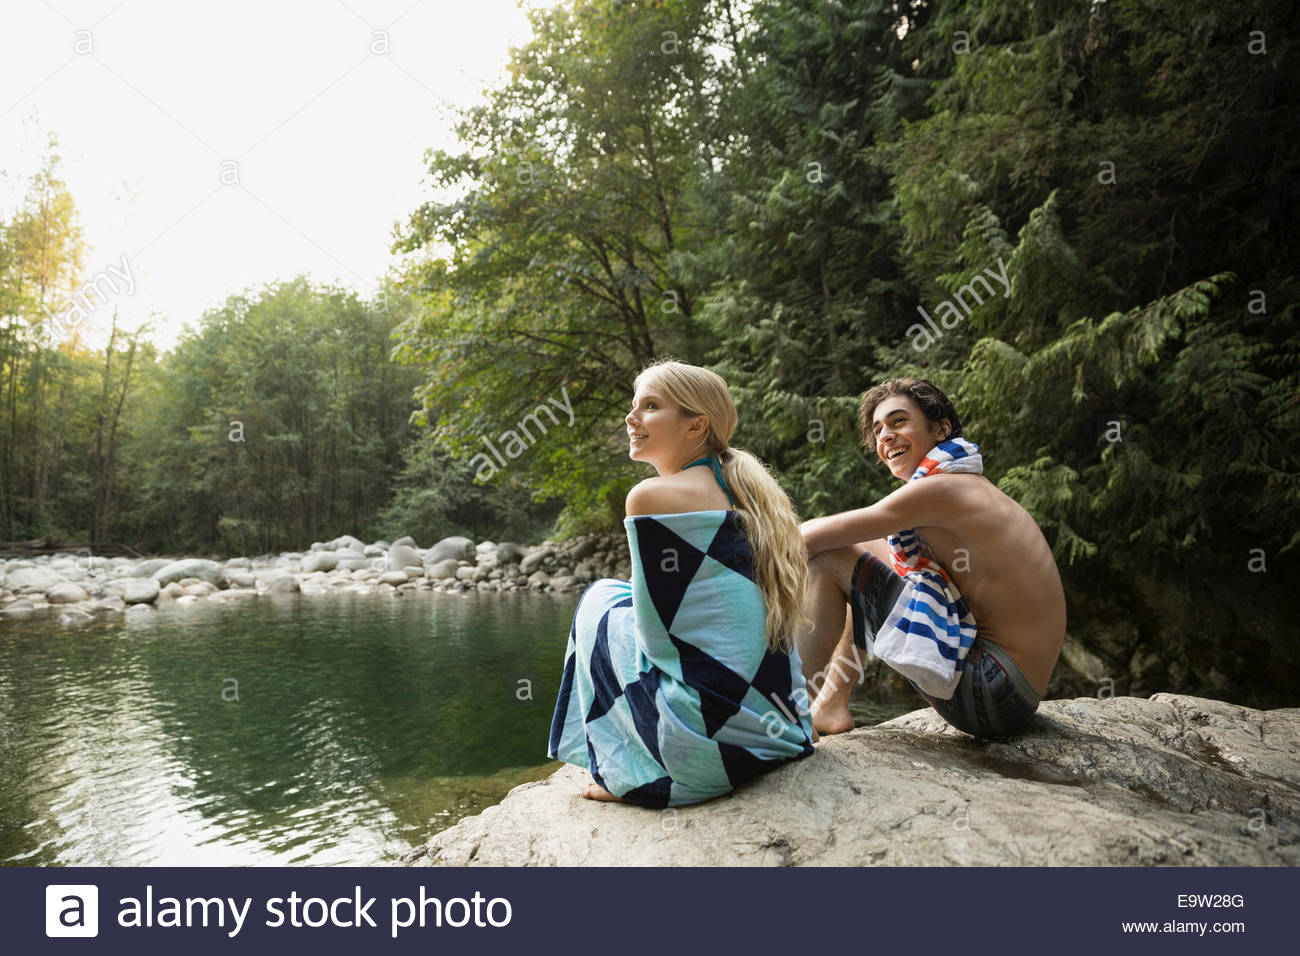 Couple wrapped in towel at swimming hole - Stock Image